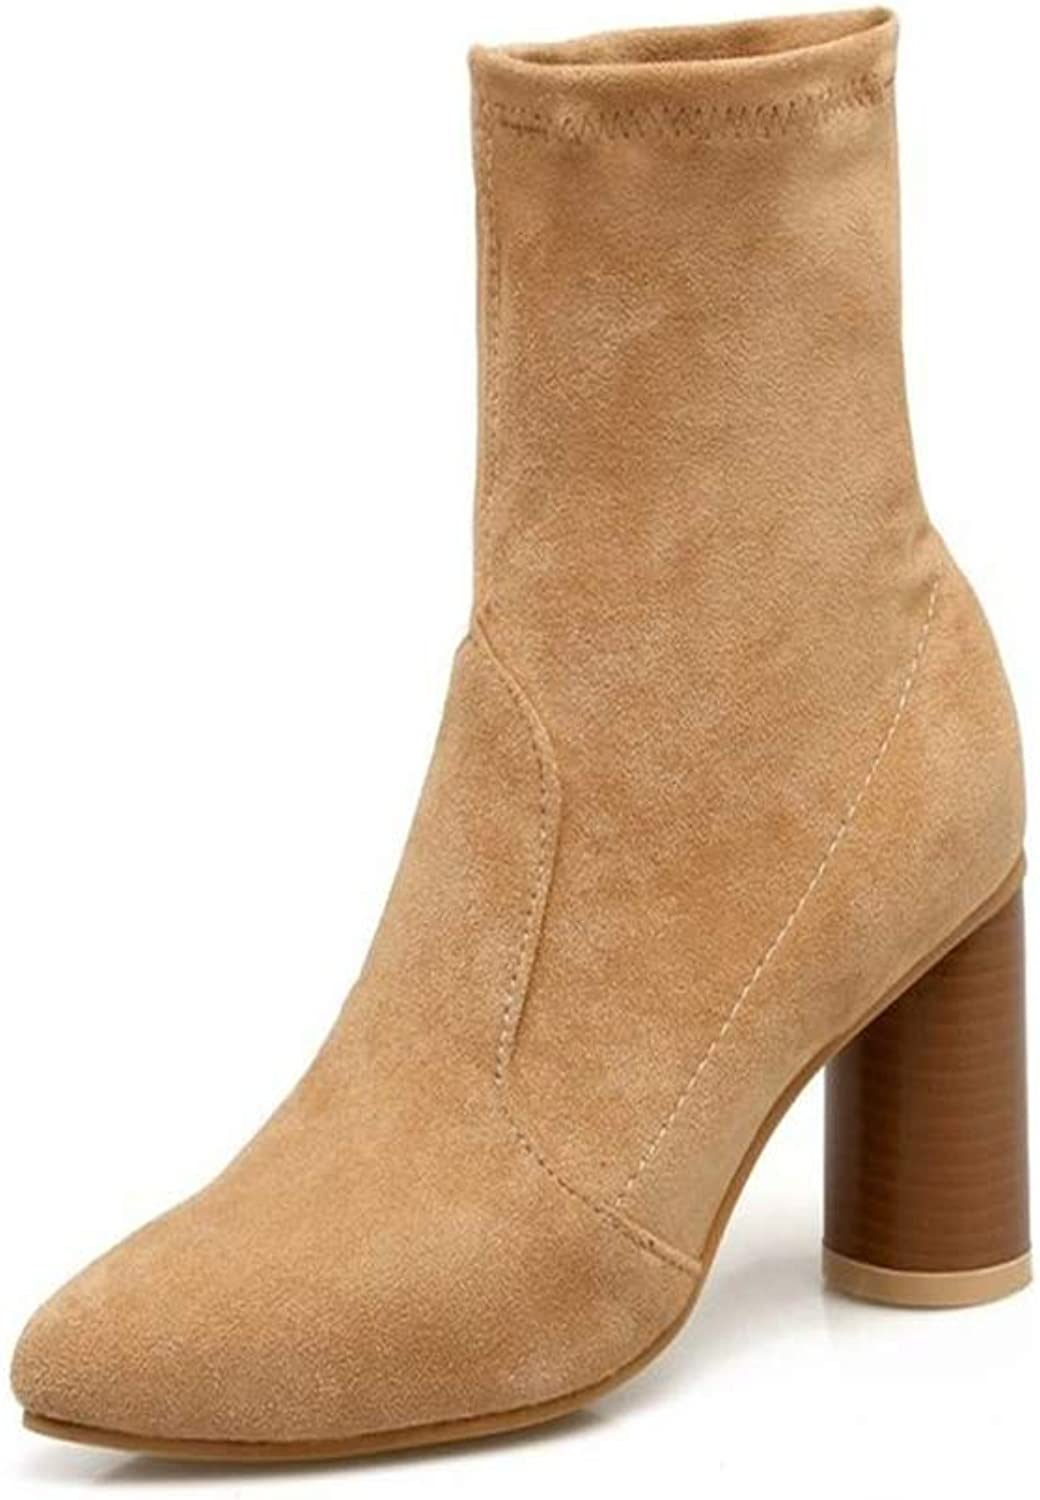 FORTUN Popular Booties Women's Winter Martin Boots British Snow Boots